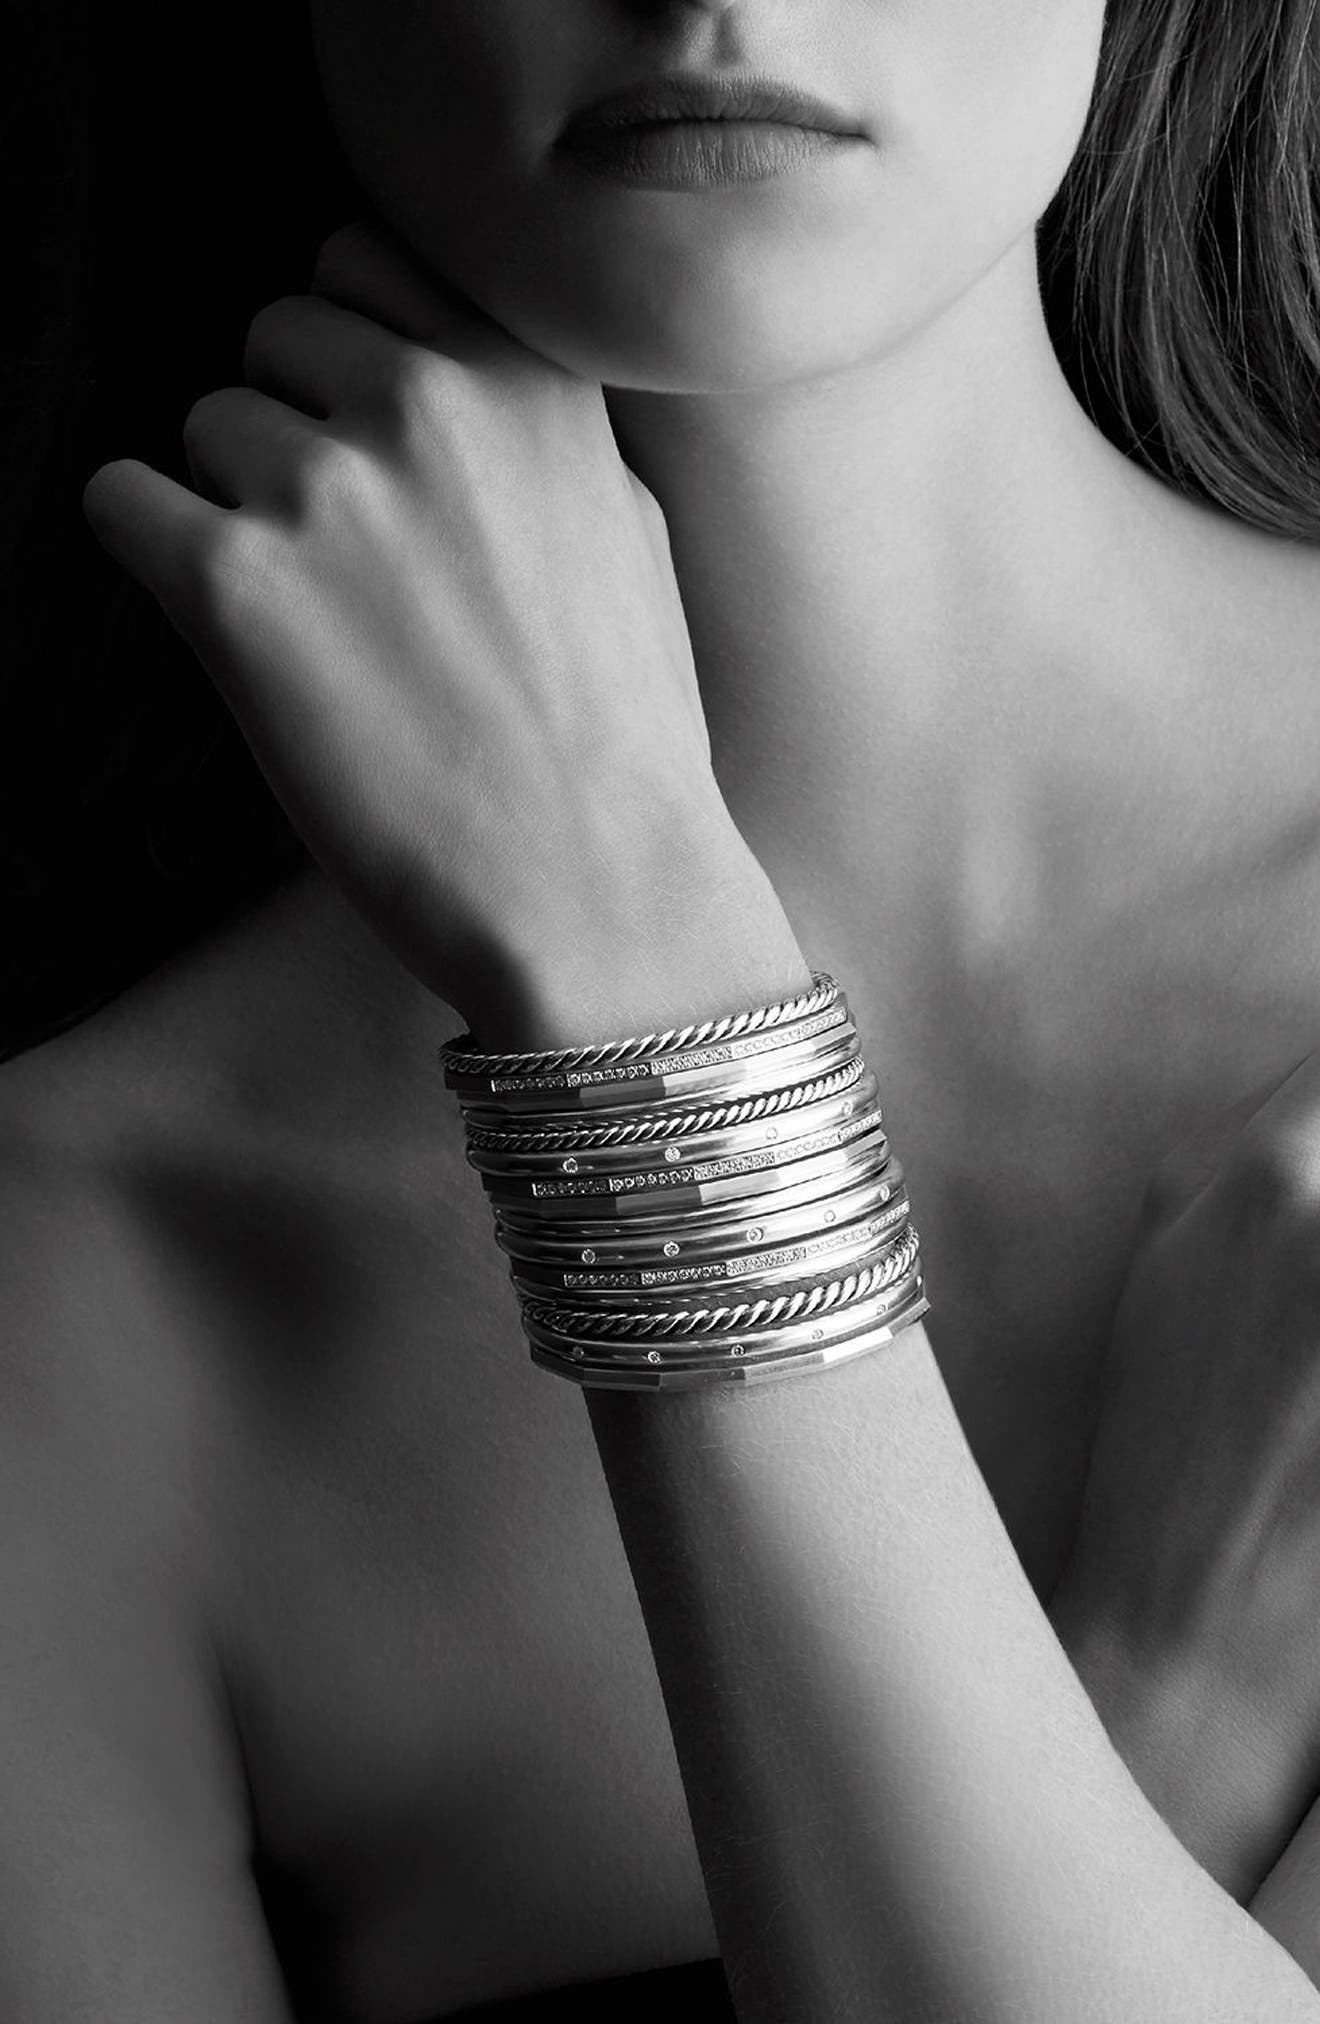 Stax Wide Cuff Bracelet with Diamonds, 54mm,                             Alternate thumbnail 2, color,                             SILVER